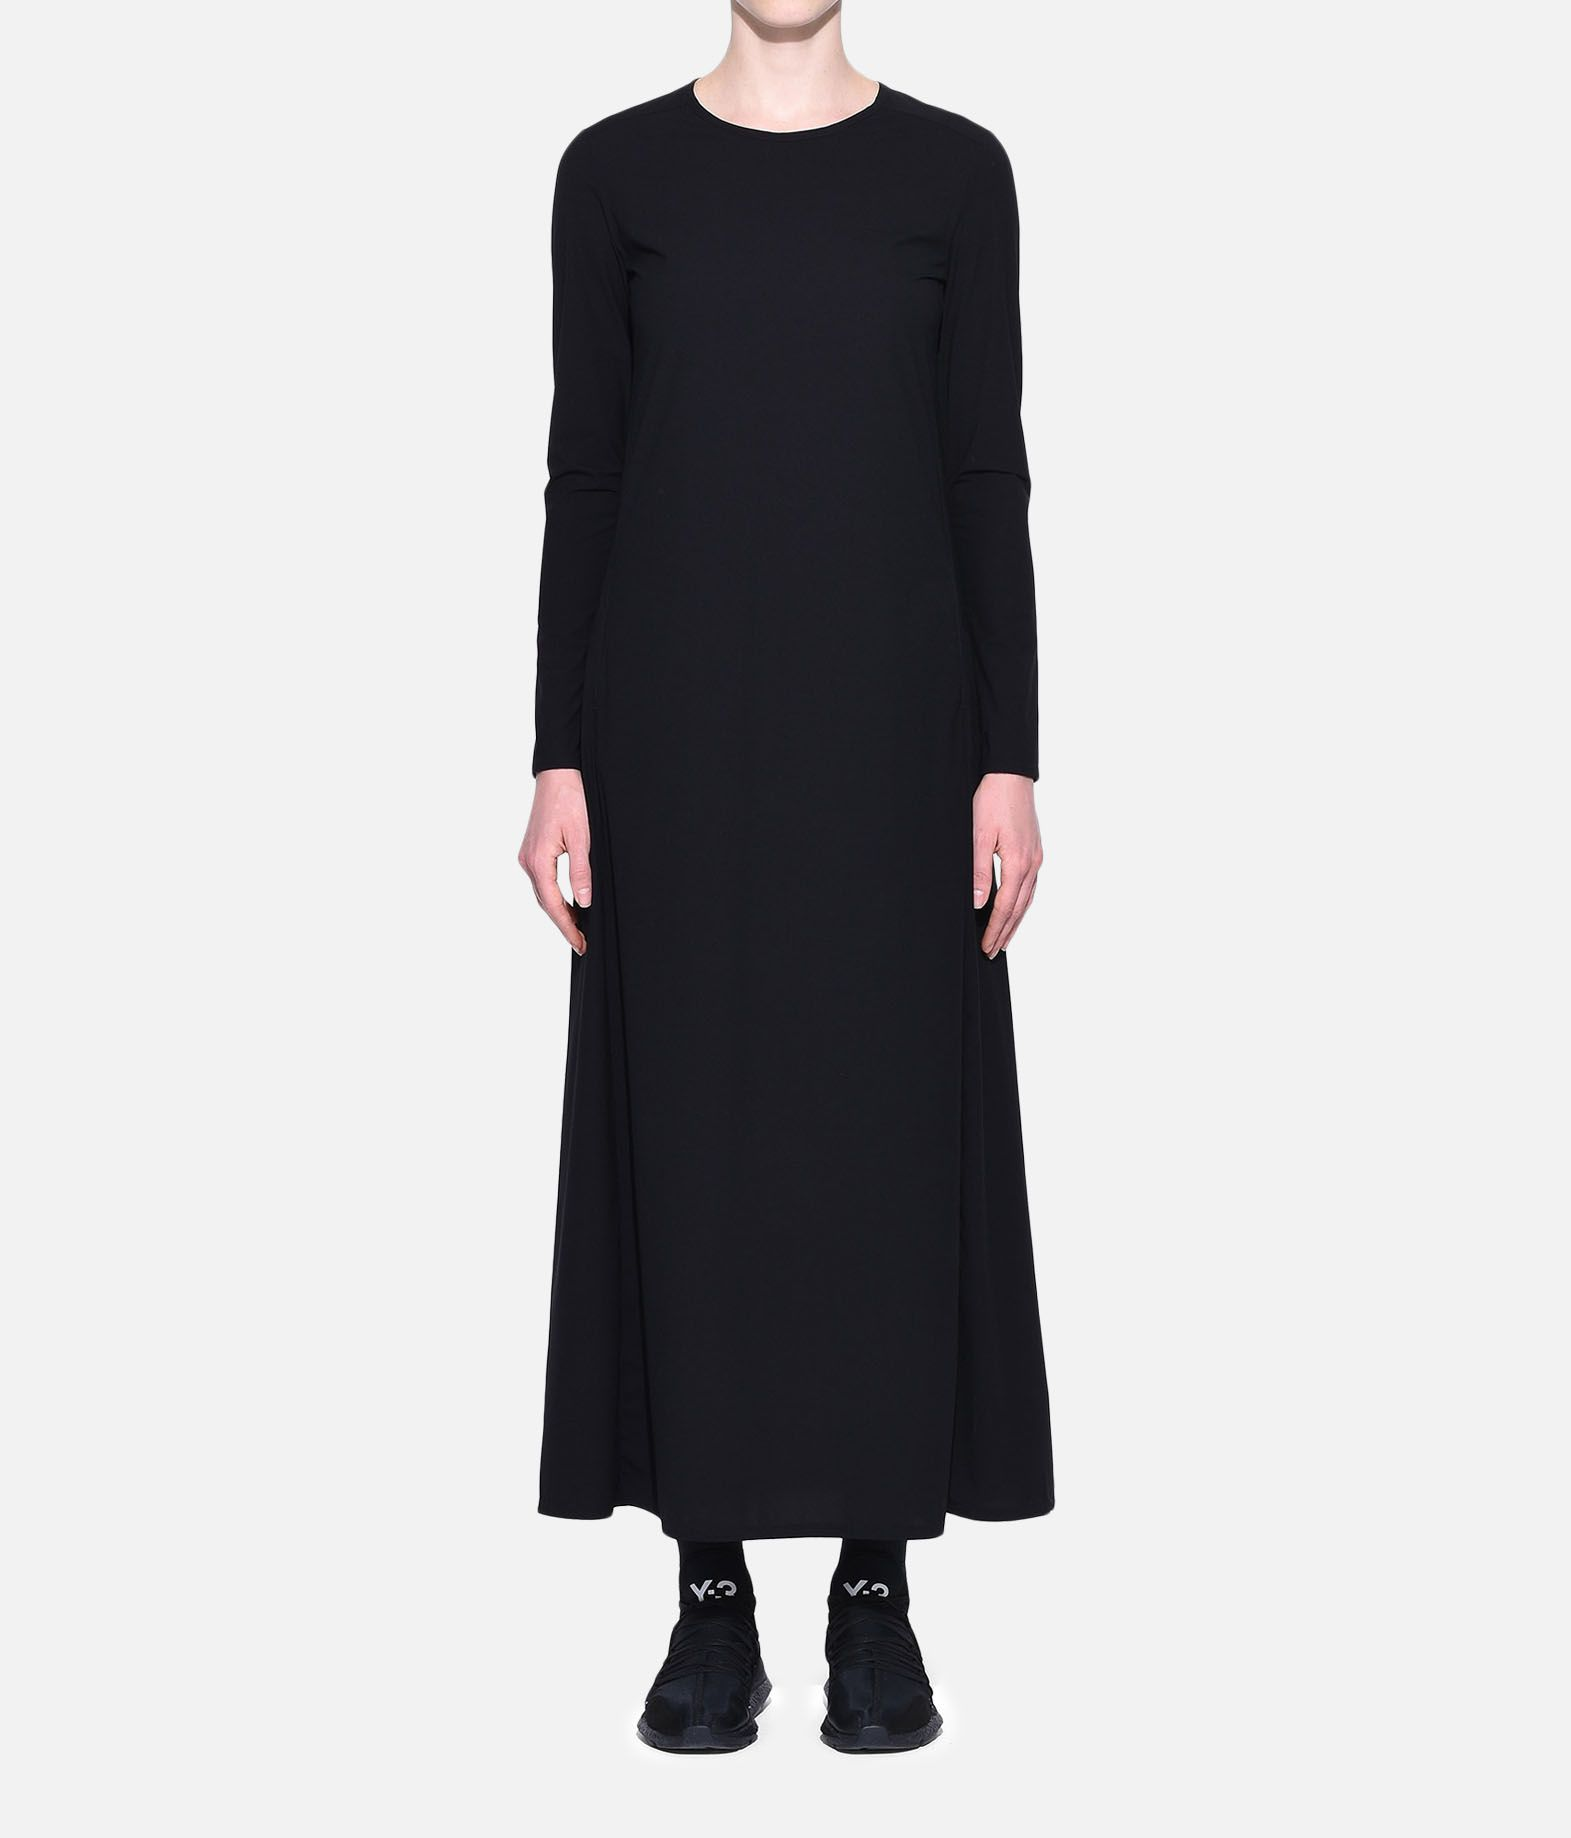 Y-3 Y-3 Stacked Logo Dress Long dress Woman r